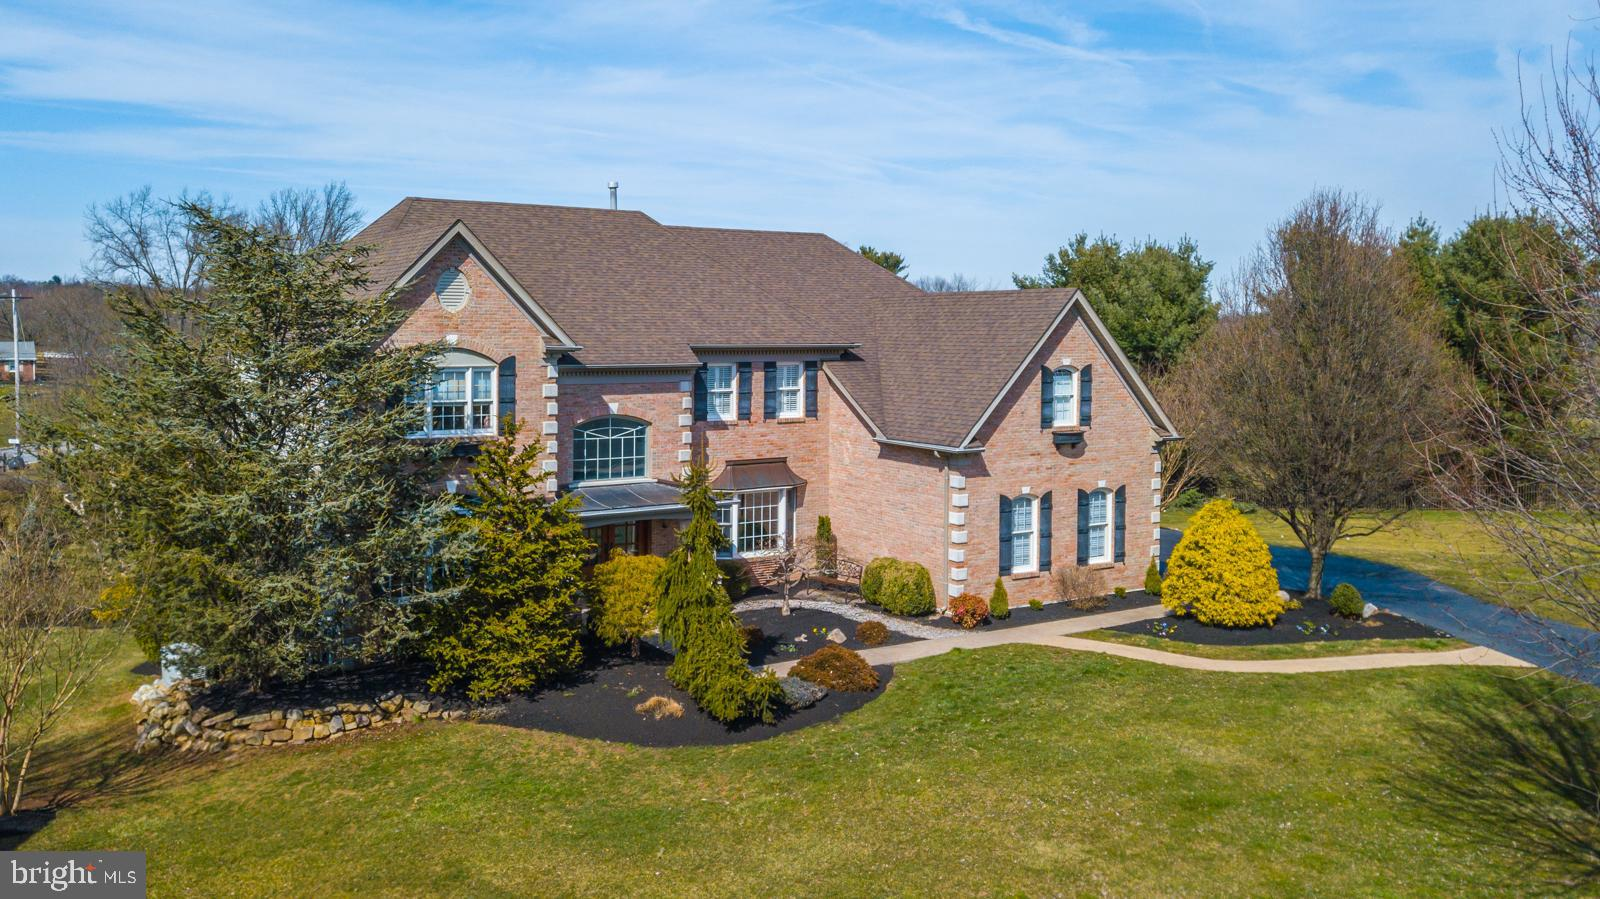 5 STABLE COURT, COLLEGEVILLE, PA 19426